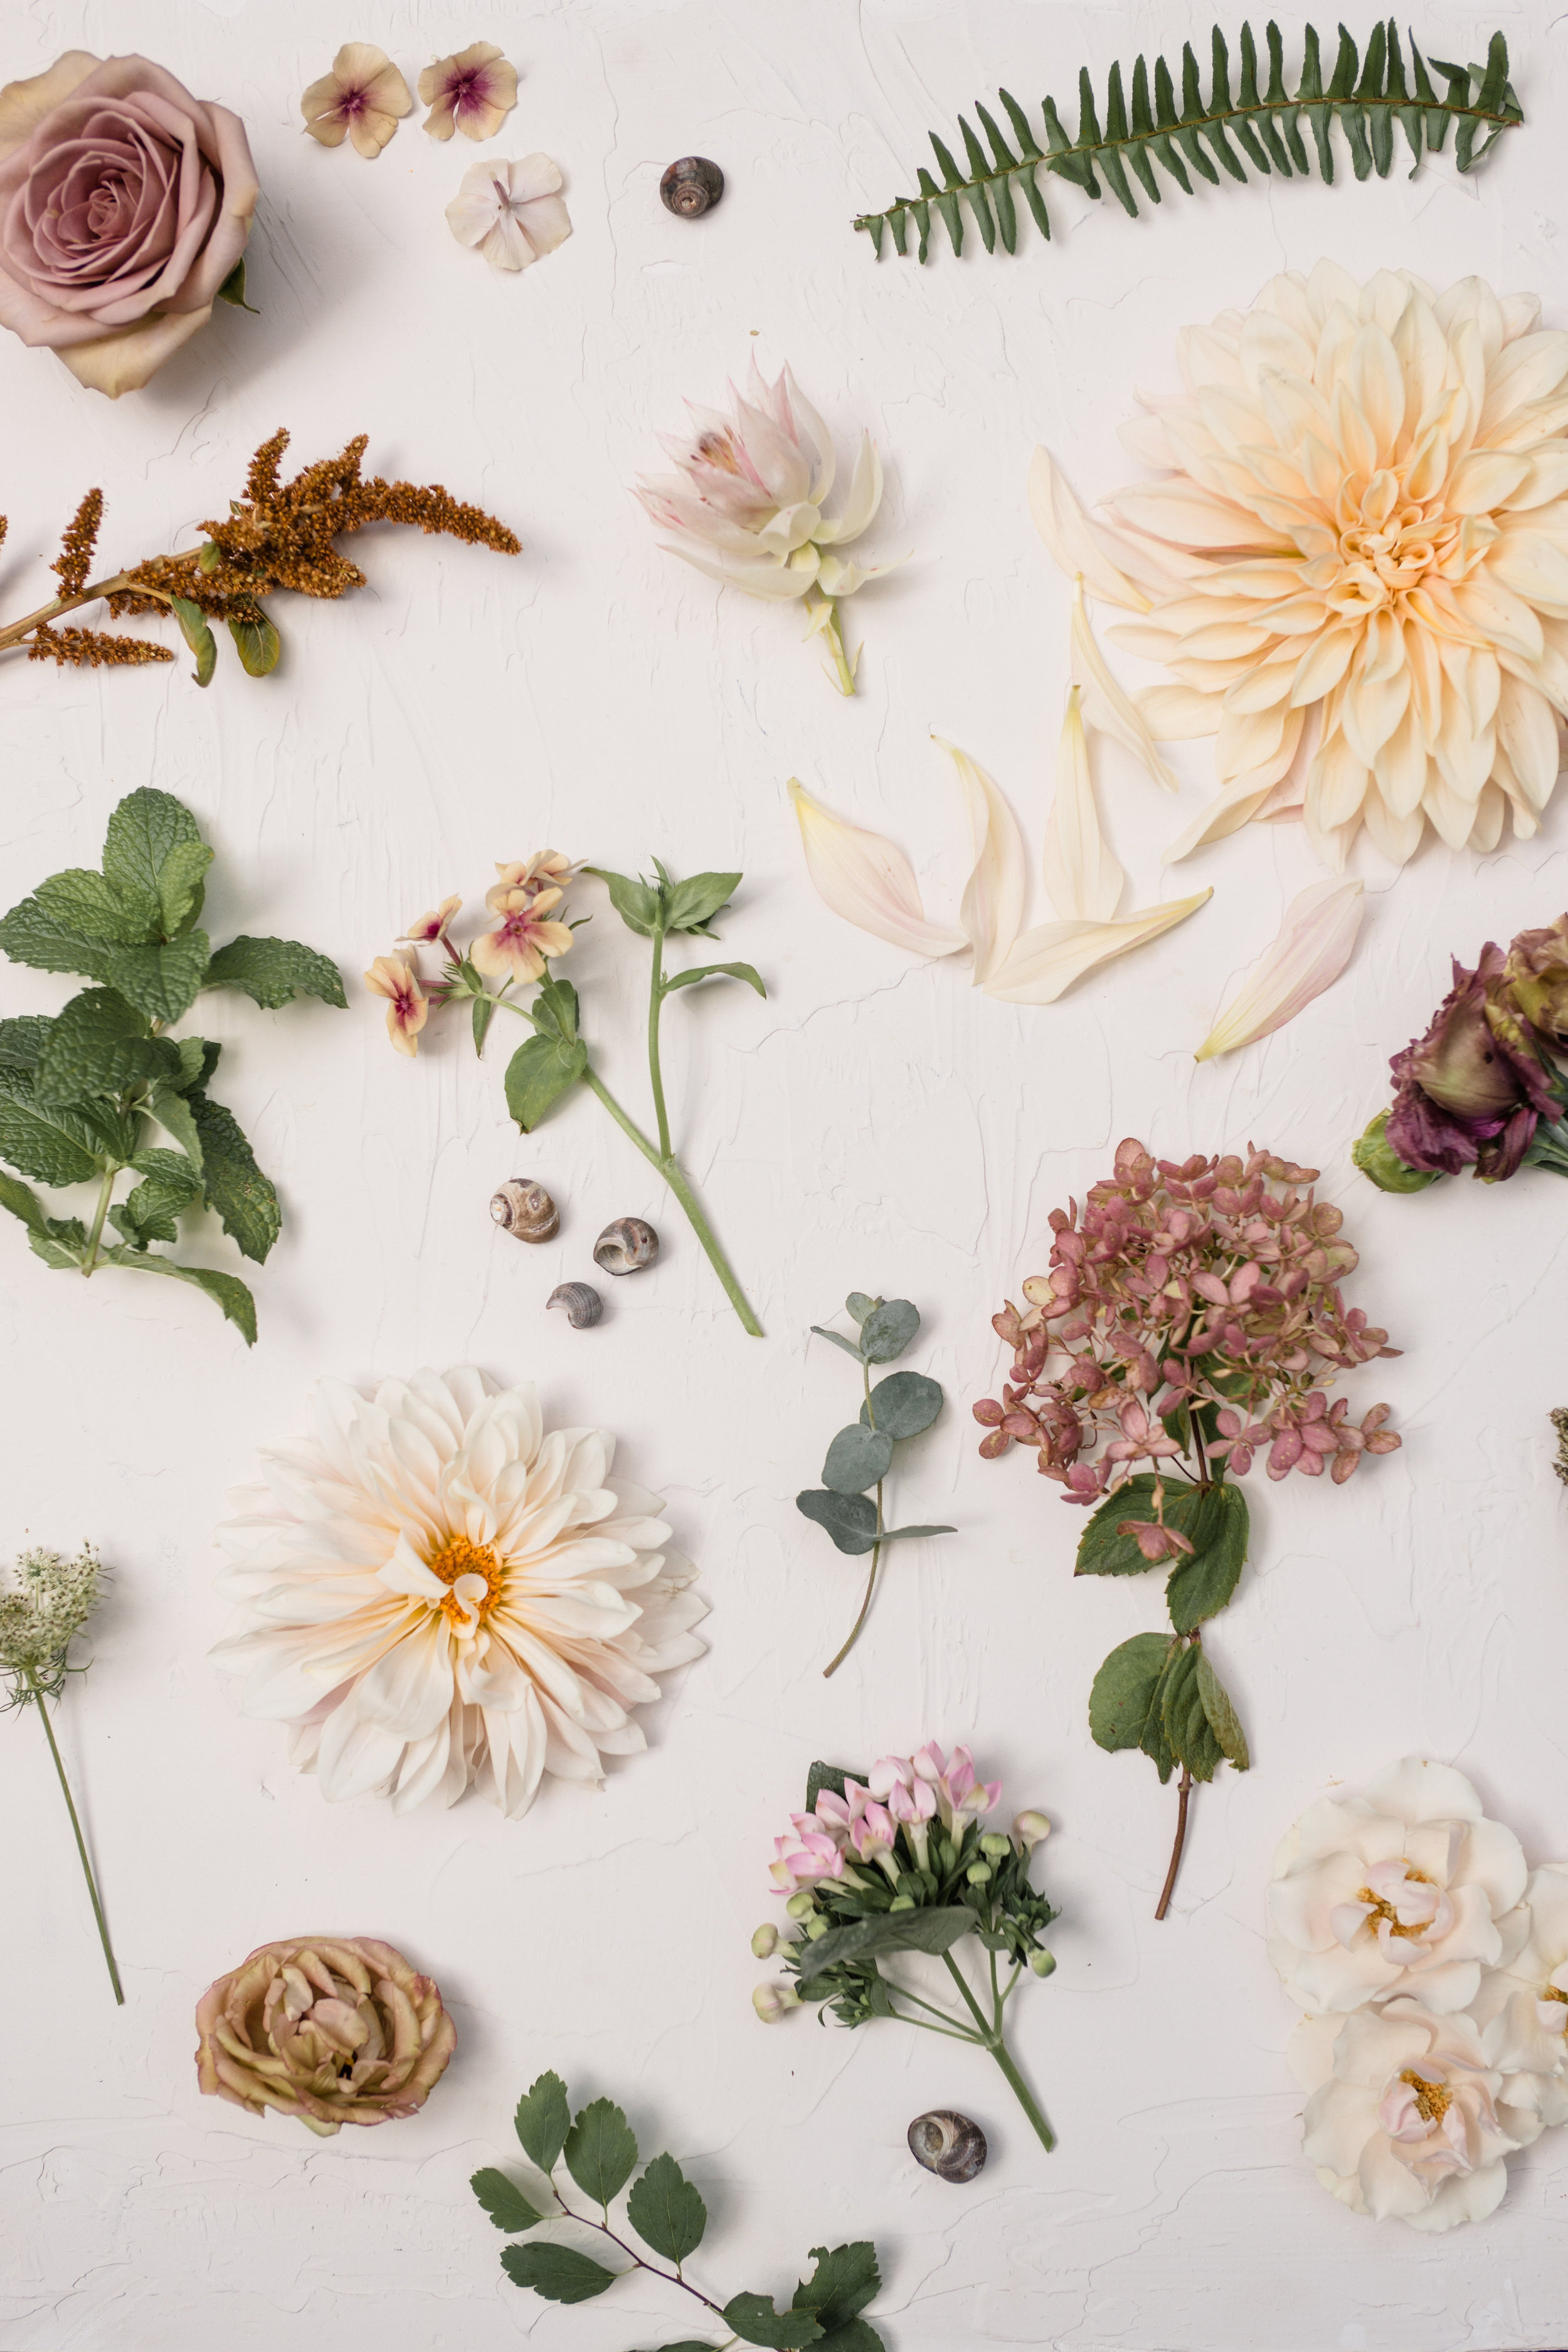 Watershed_Floral_Maine_Coast_Wedding_Inspiration_Bouquet_0195.jpg